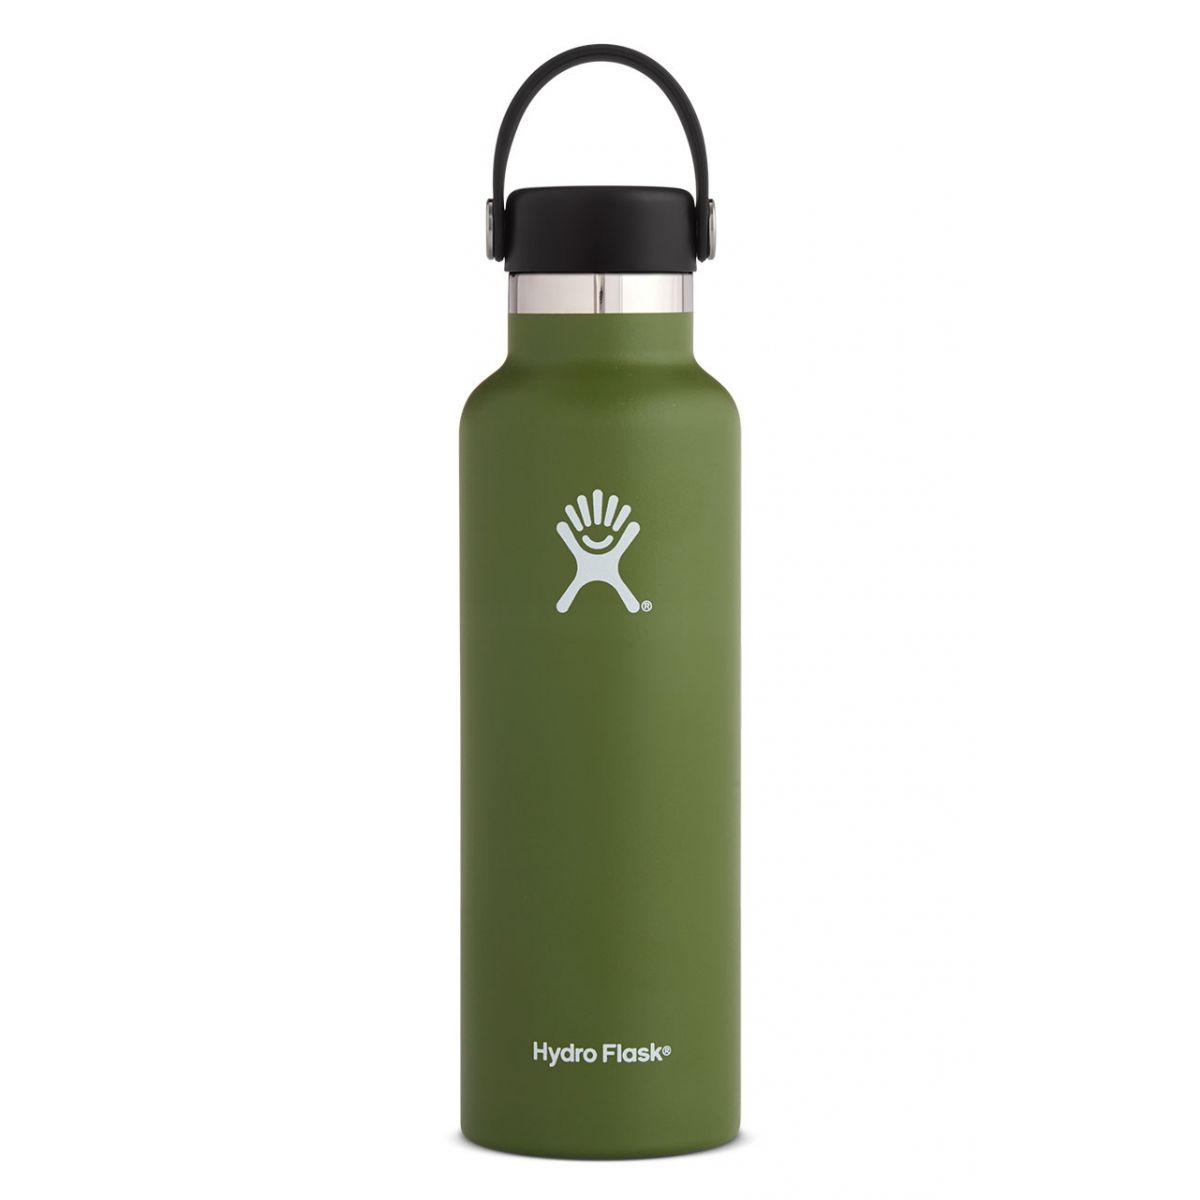 Image For Hydroflask Insulated Water Bottle, Olive